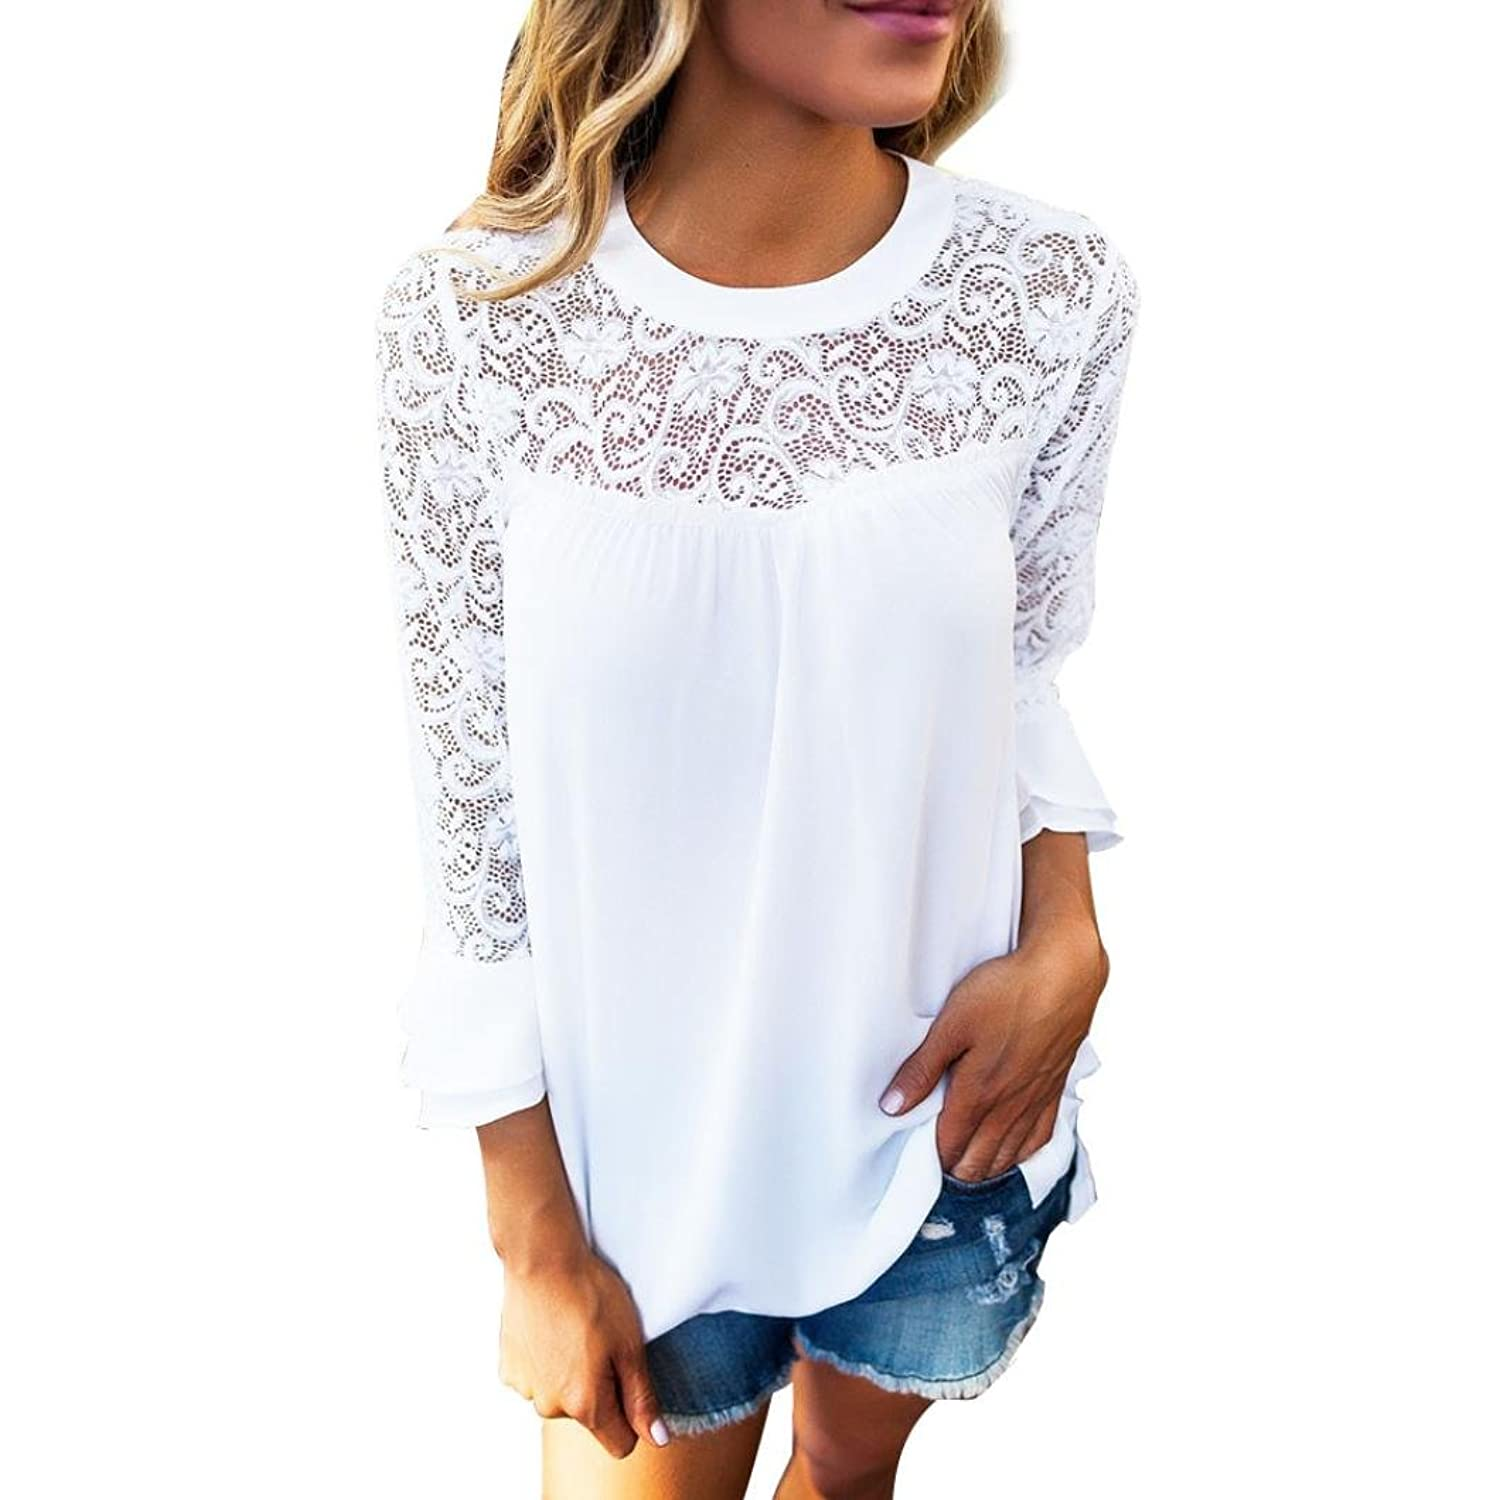 2018 Women Ladies 3/4 Sleeve Blouse Frill Tops Ladies Shirt Embroidery Lace T Shirt by Topunder